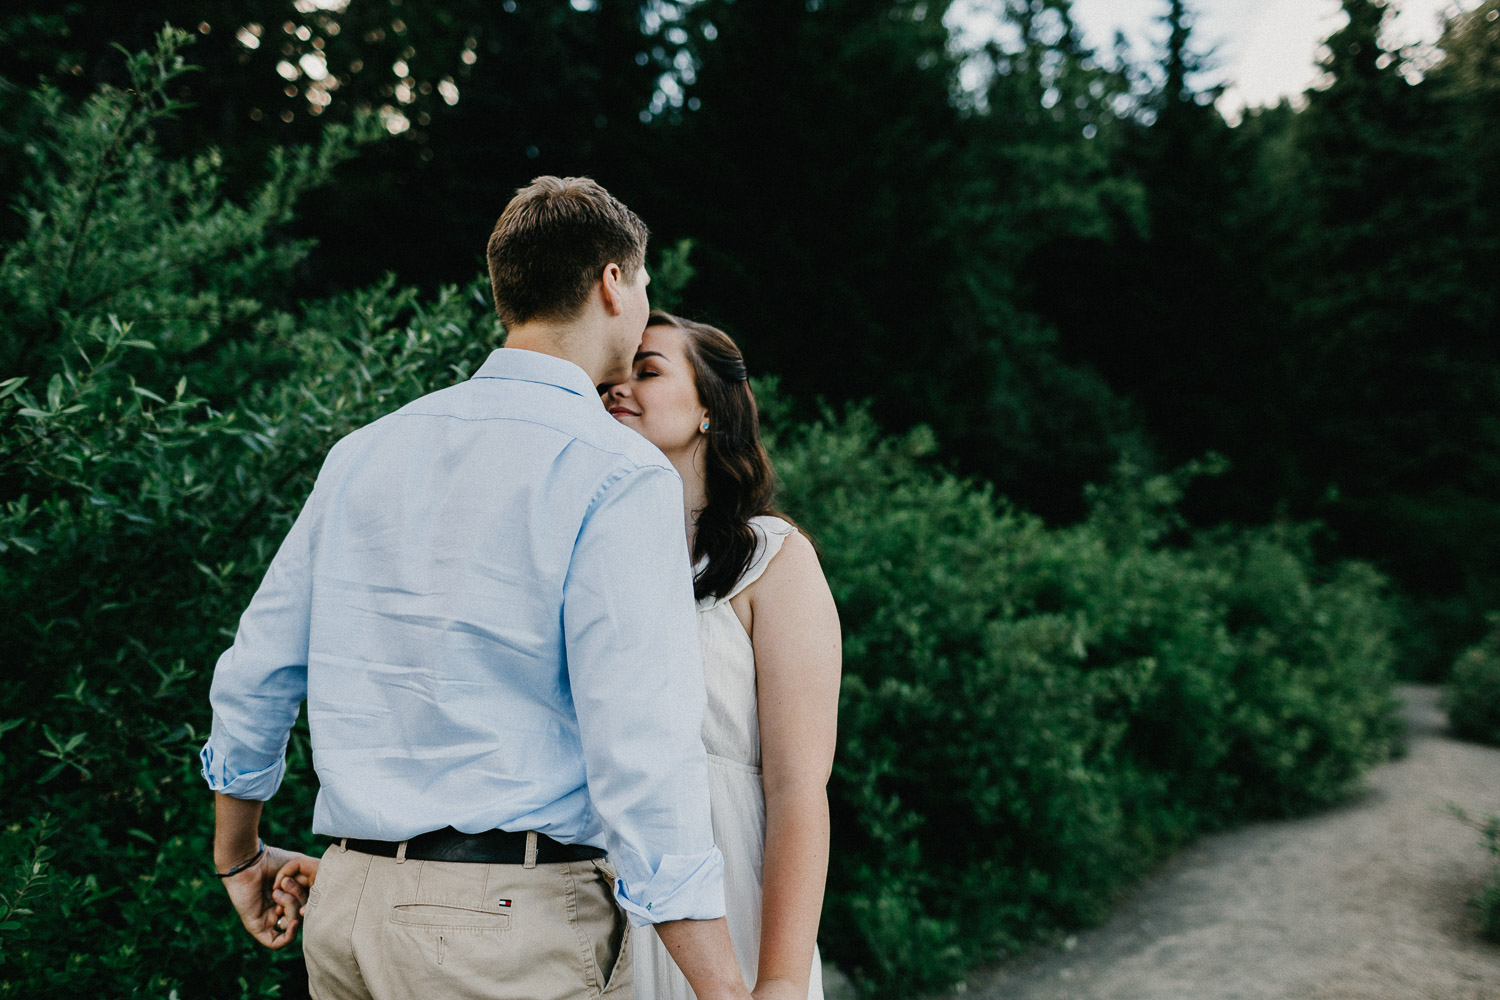 Image of the guy kisses the girl in front of green pine trees